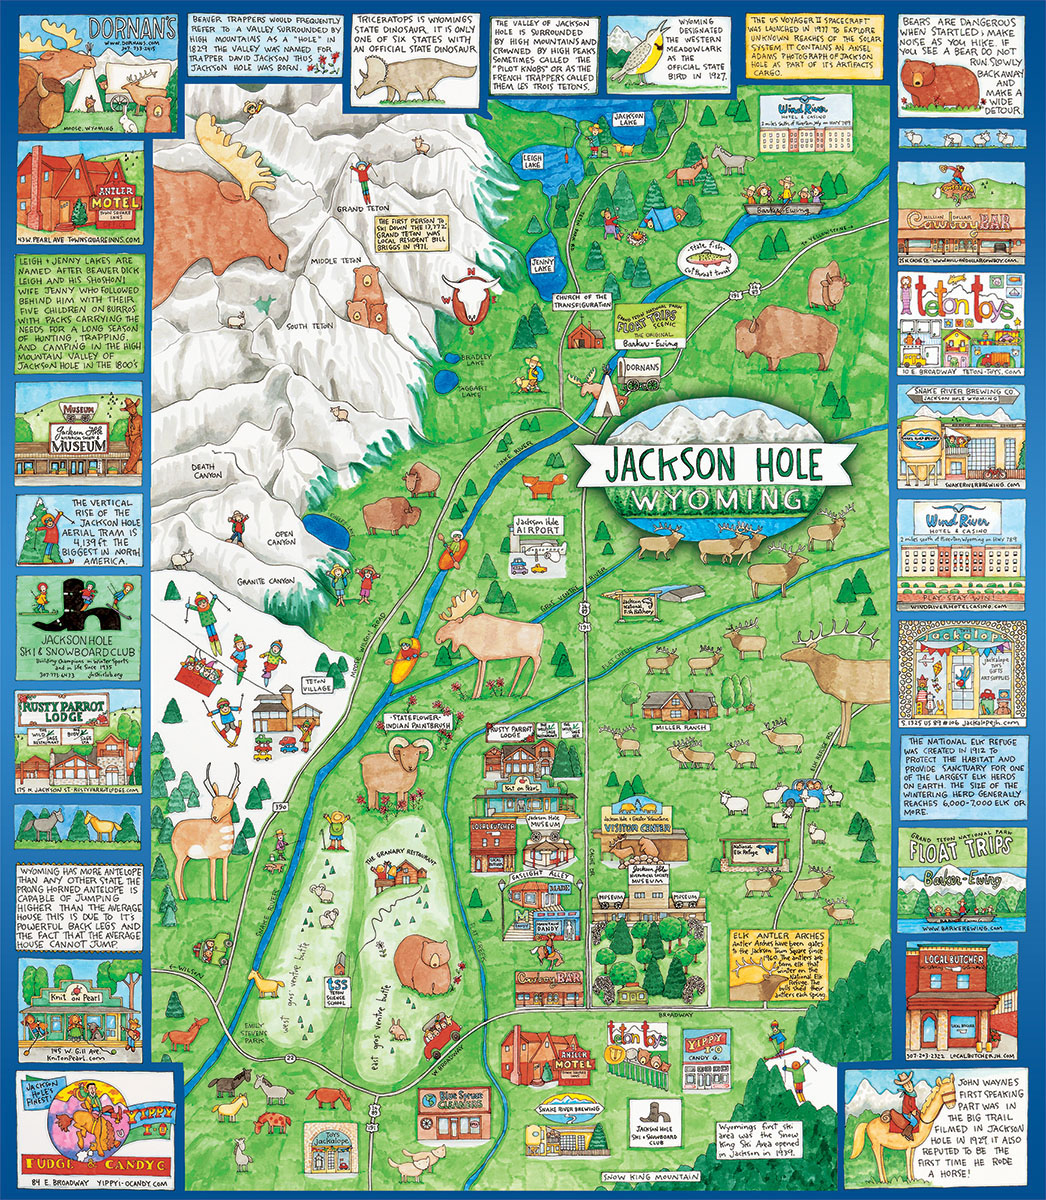 Jackson Hole Graphics / Illustration Jigsaw Puzzle